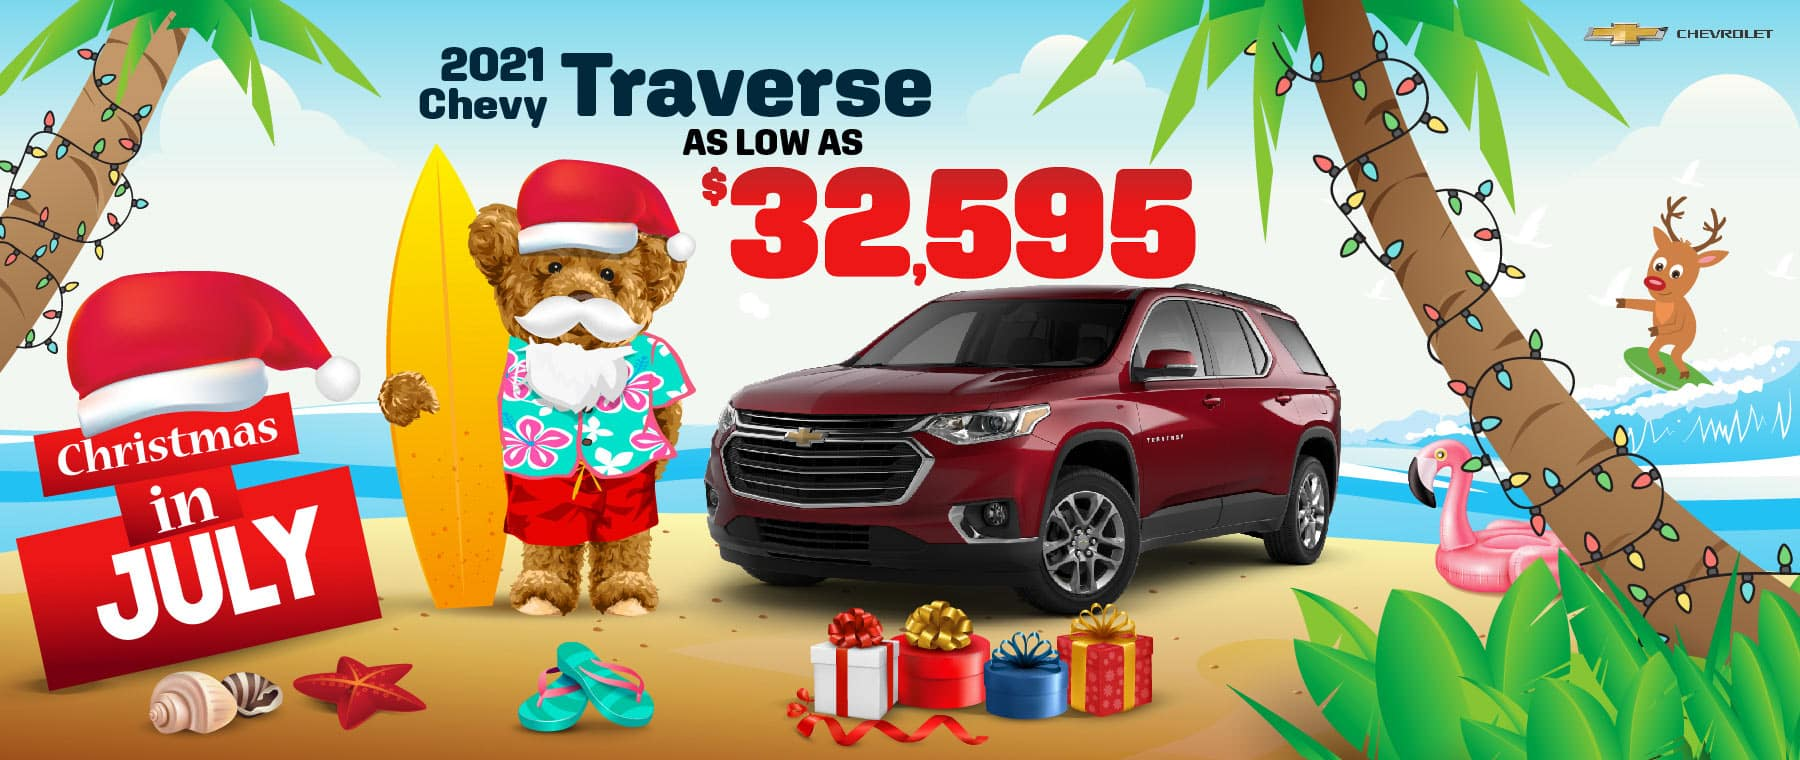 2021 Chevy Traverse - as low as $32,595